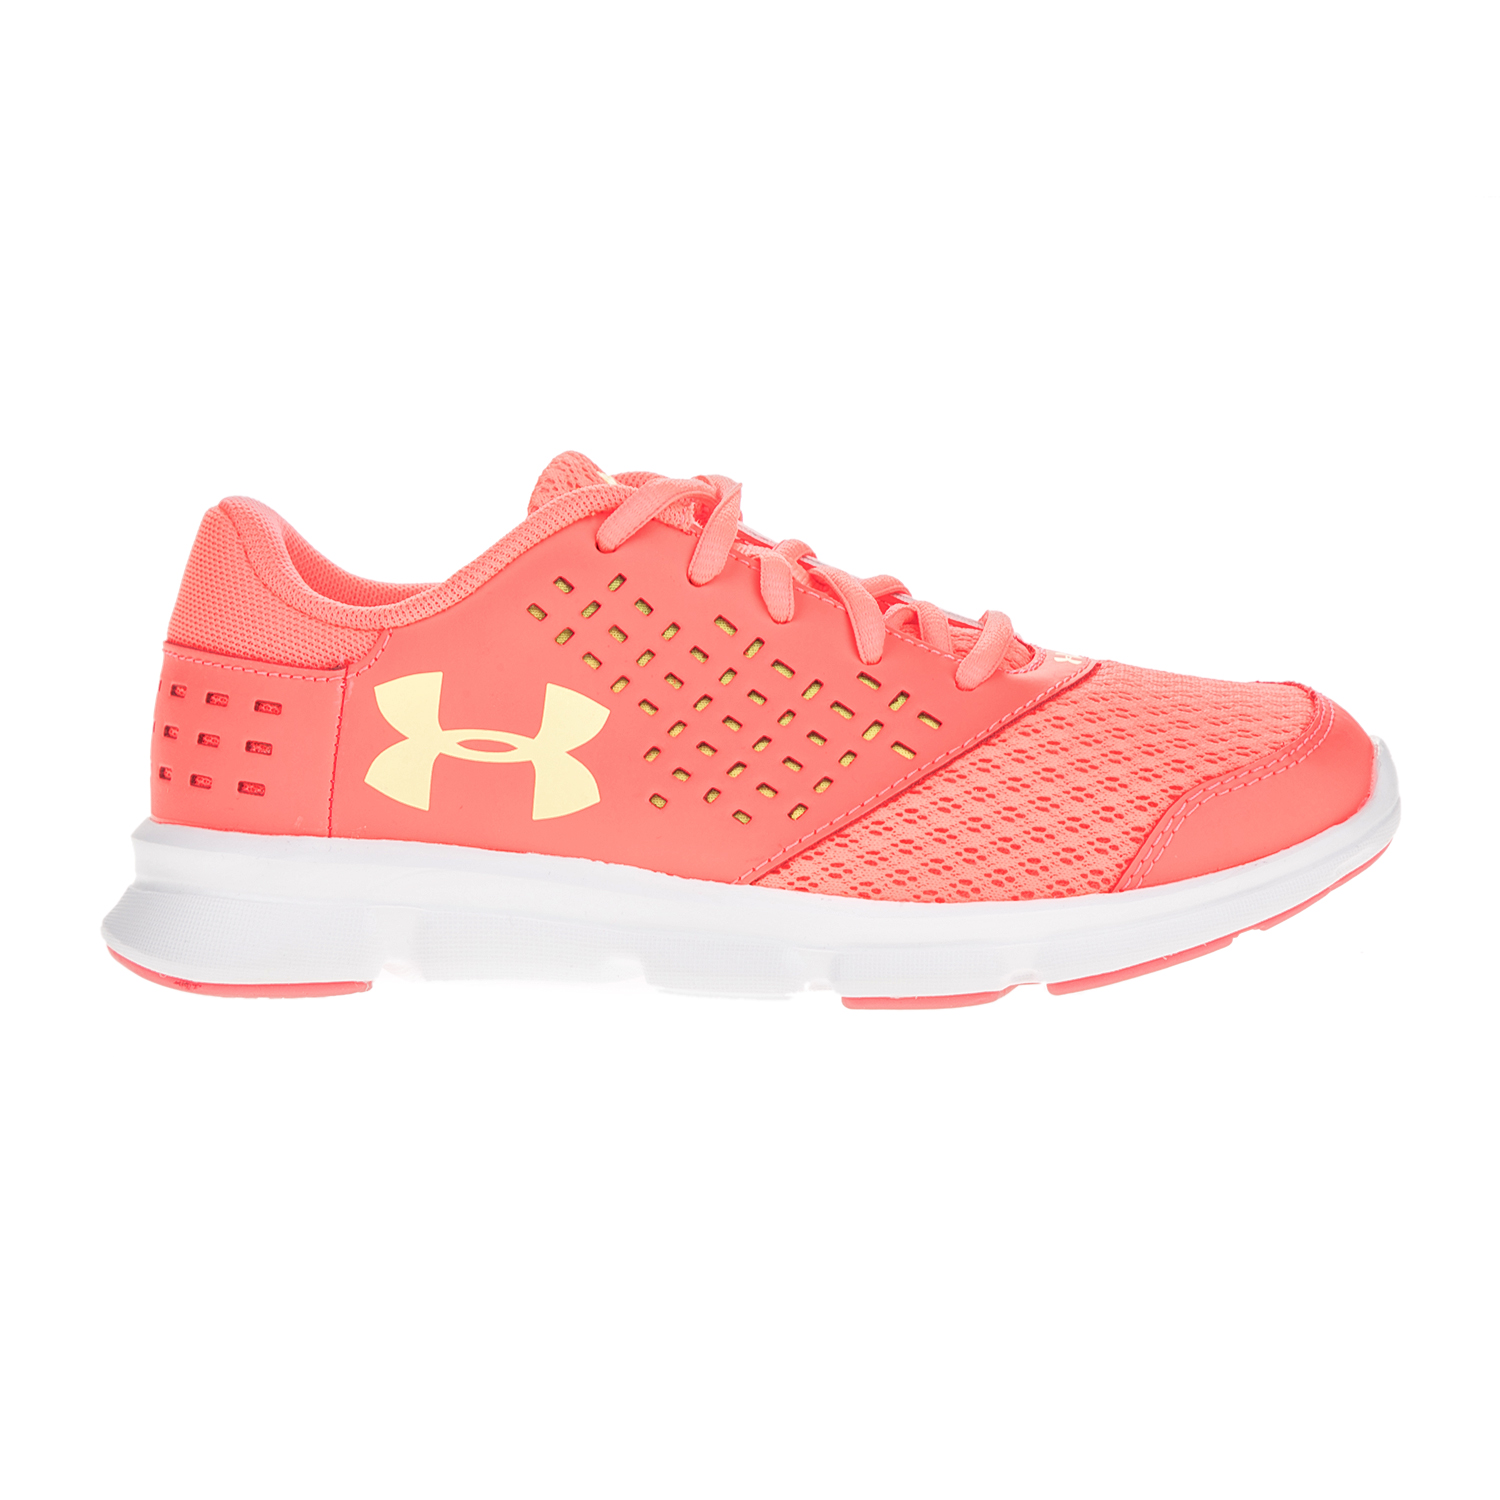 UNDER ARMOUR – Κοριτσίστικα αθλητικά παπούτσια UNDER ARMOUR GPS Rave RN πορτοκαλί